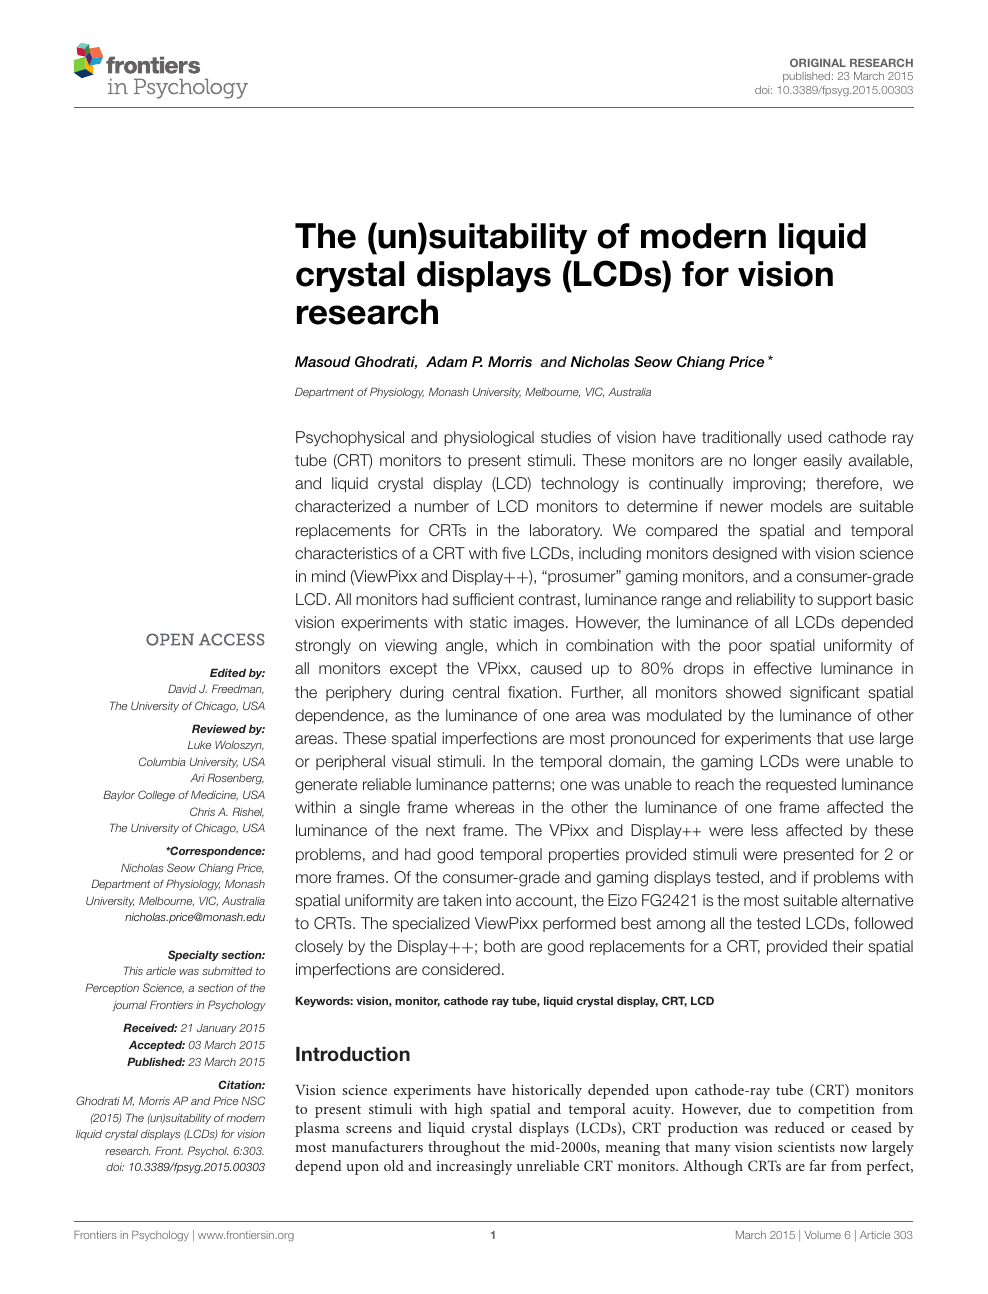 The (un)suitability of modern liquid crystal displays (LCDs